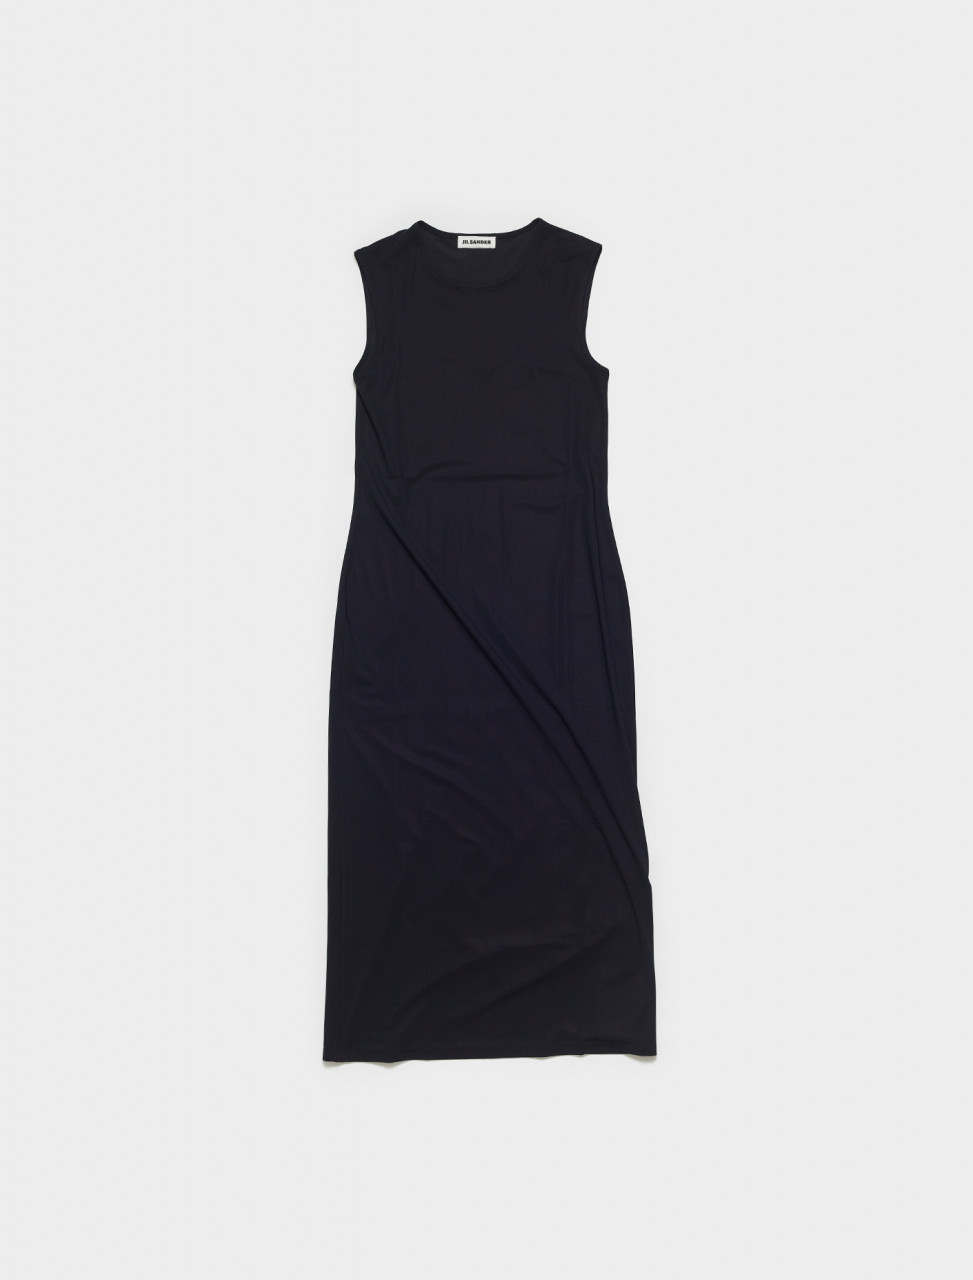 JSPS705038-WS477108-001 JIL SANDER LONG UNDERDRESS IN BLACK